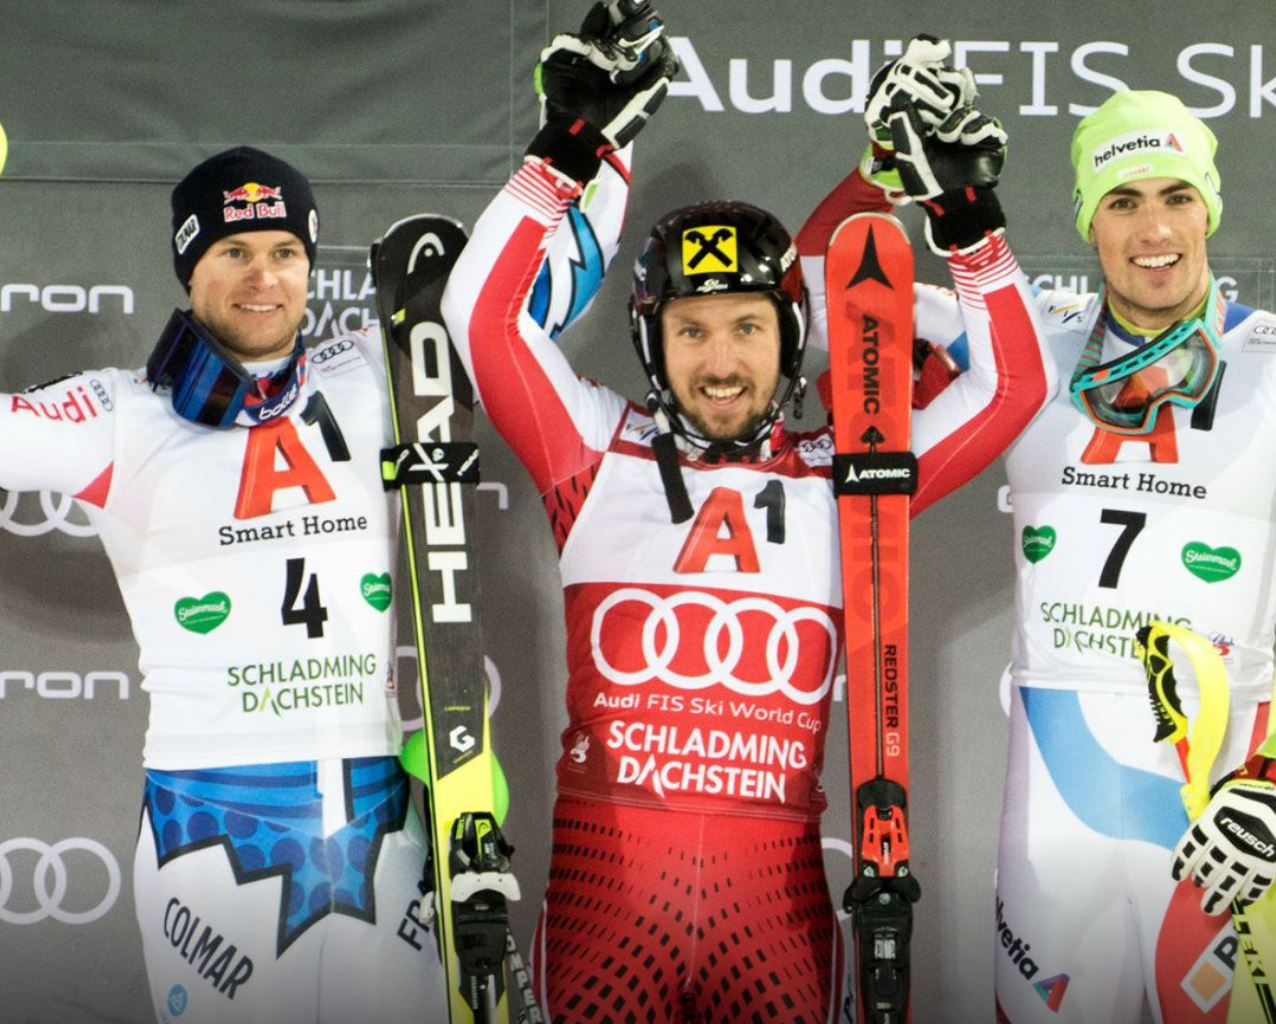 podio schladming